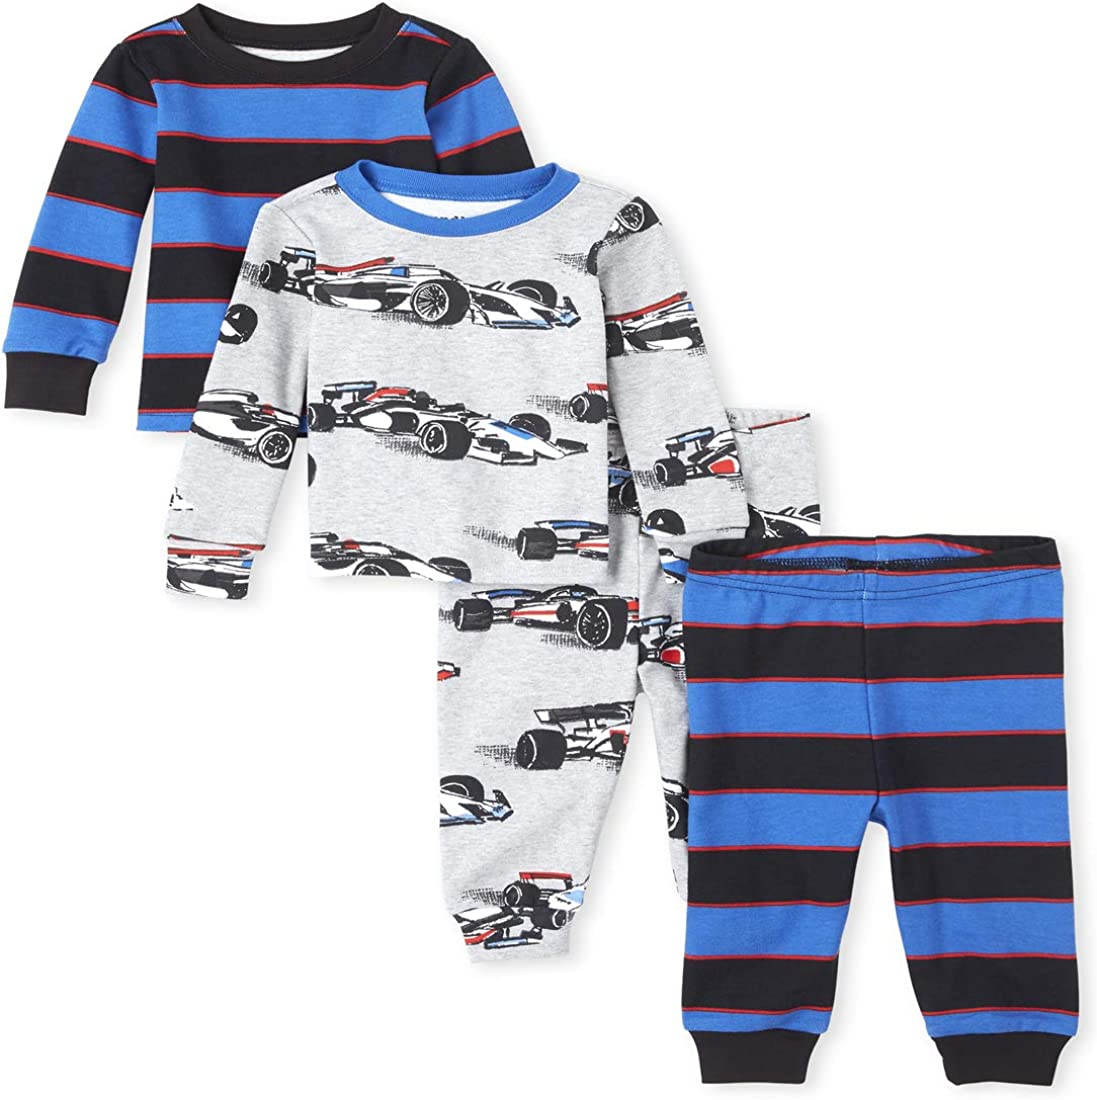 The Children's Place Boys' Baby and Toddler Race Car Snug Fit Cotton 4-Piece Pajamas